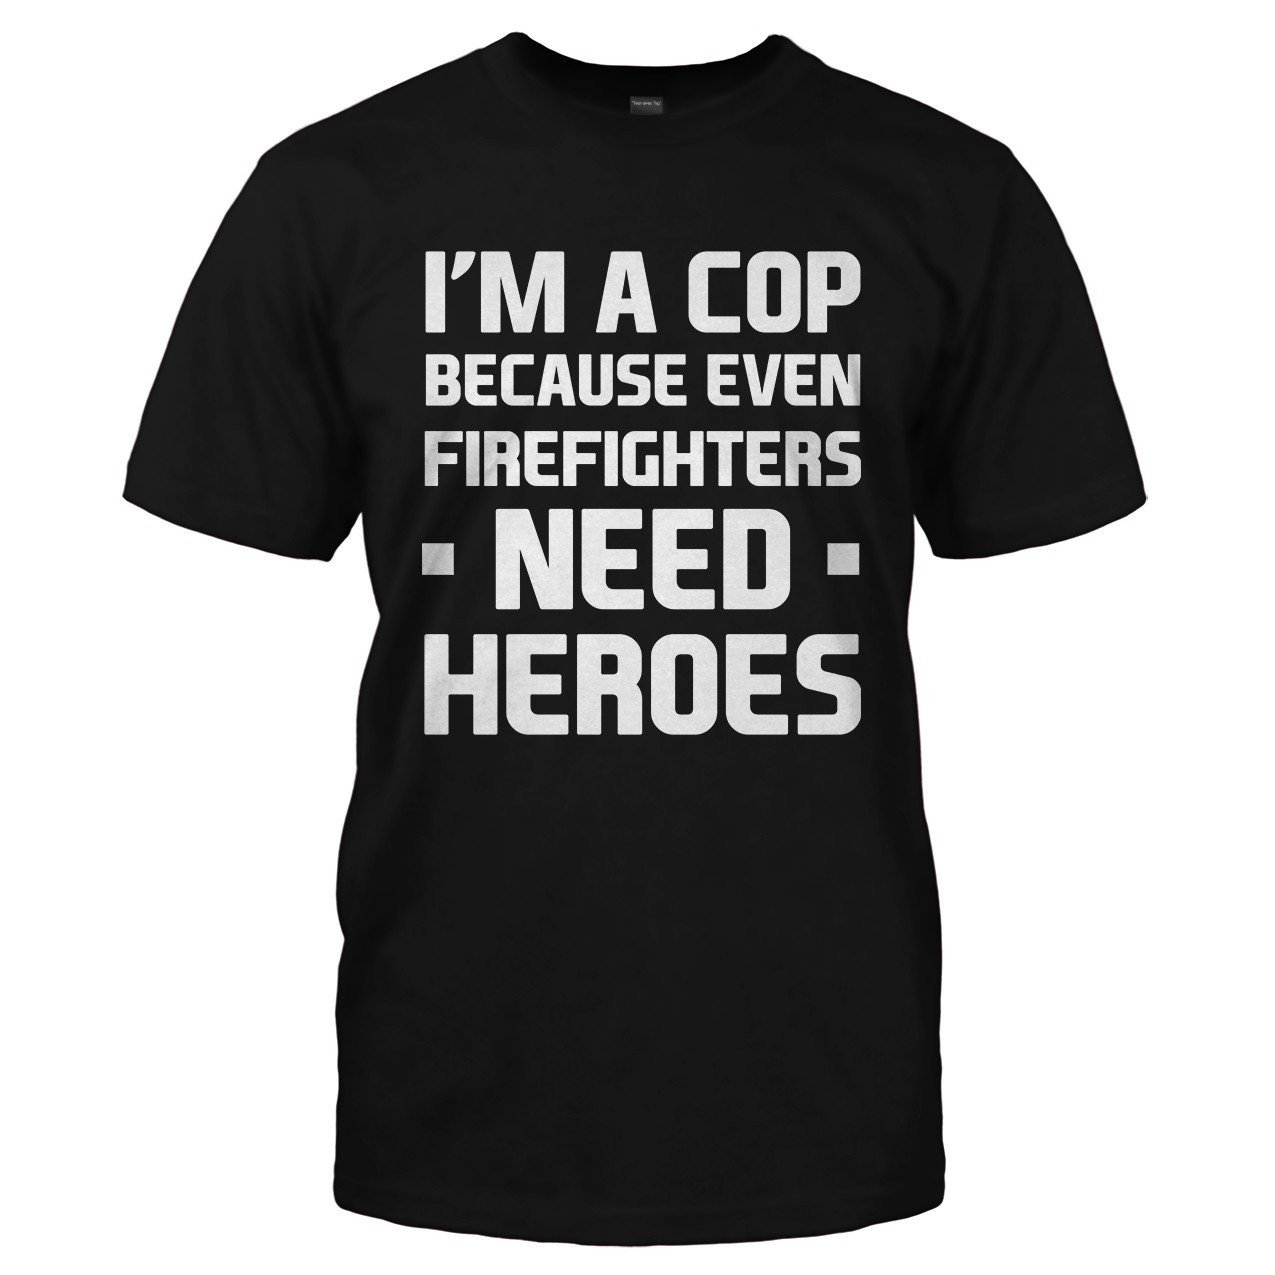 172fc42b87 I'm a Cop Because Even Firefighters Need Heroes - Police T-Shirts & Hoodies  - I Love Apparel